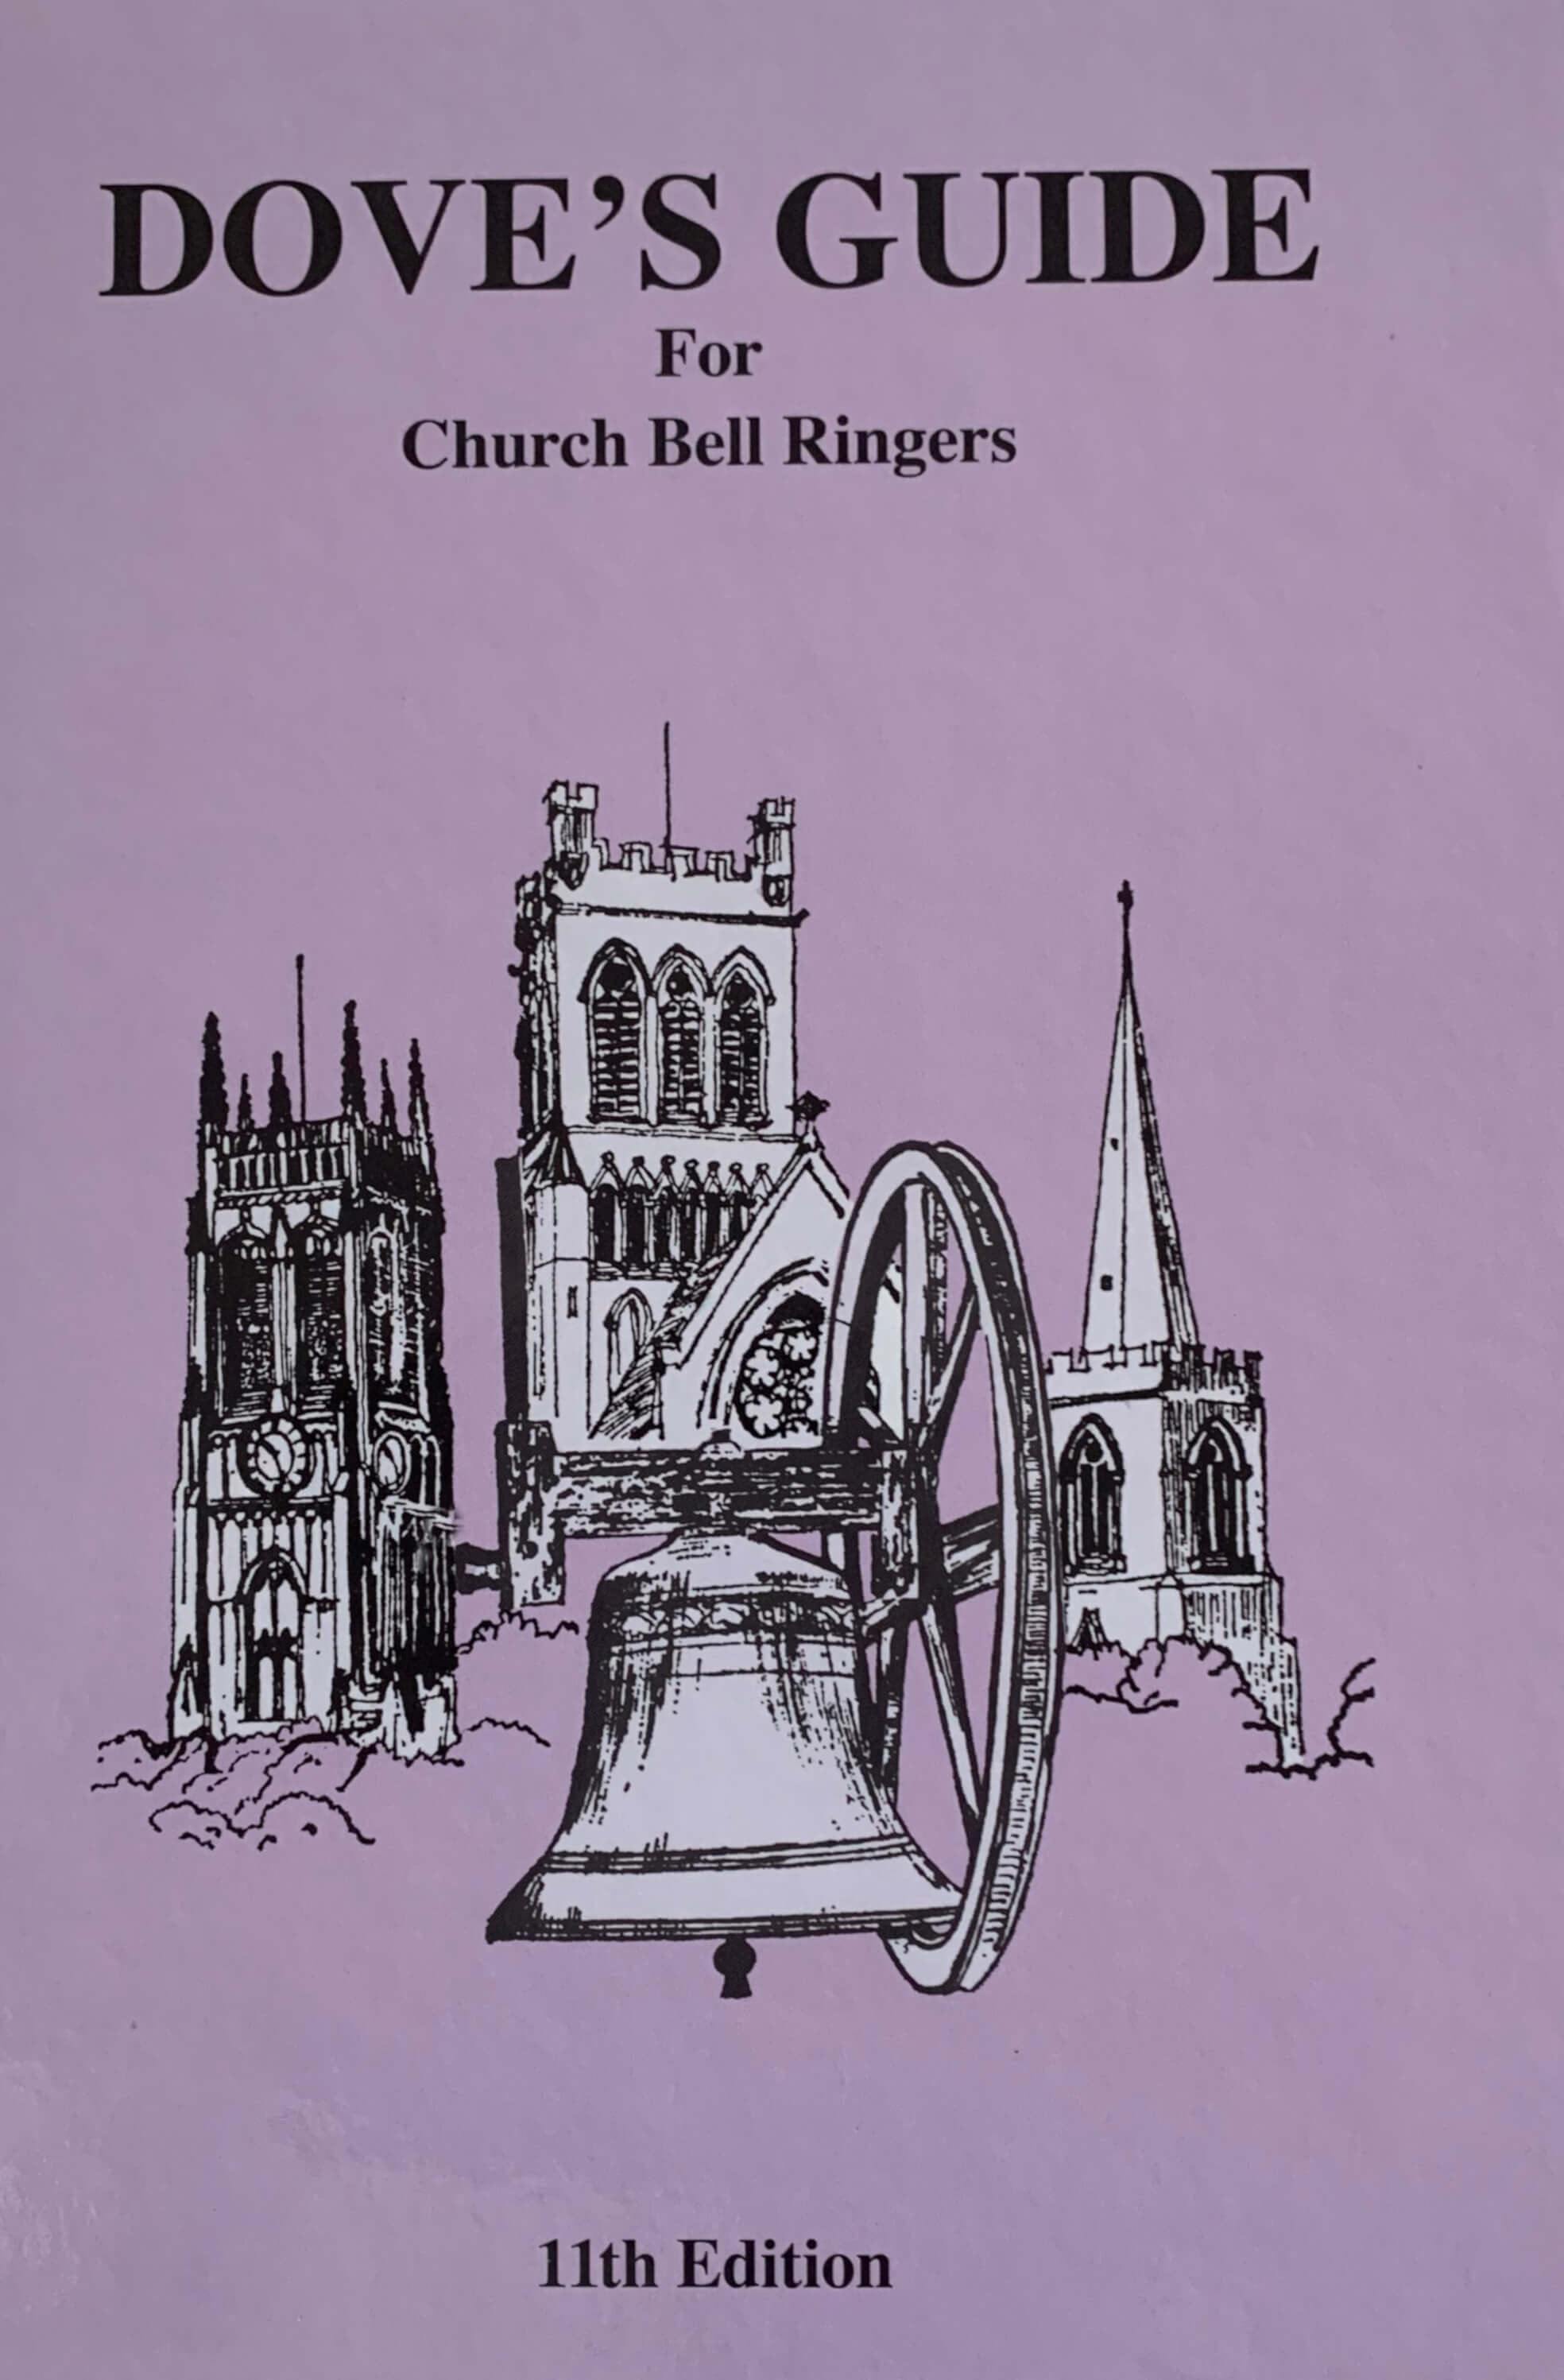 Dove's Guide for Church Bell Ringers